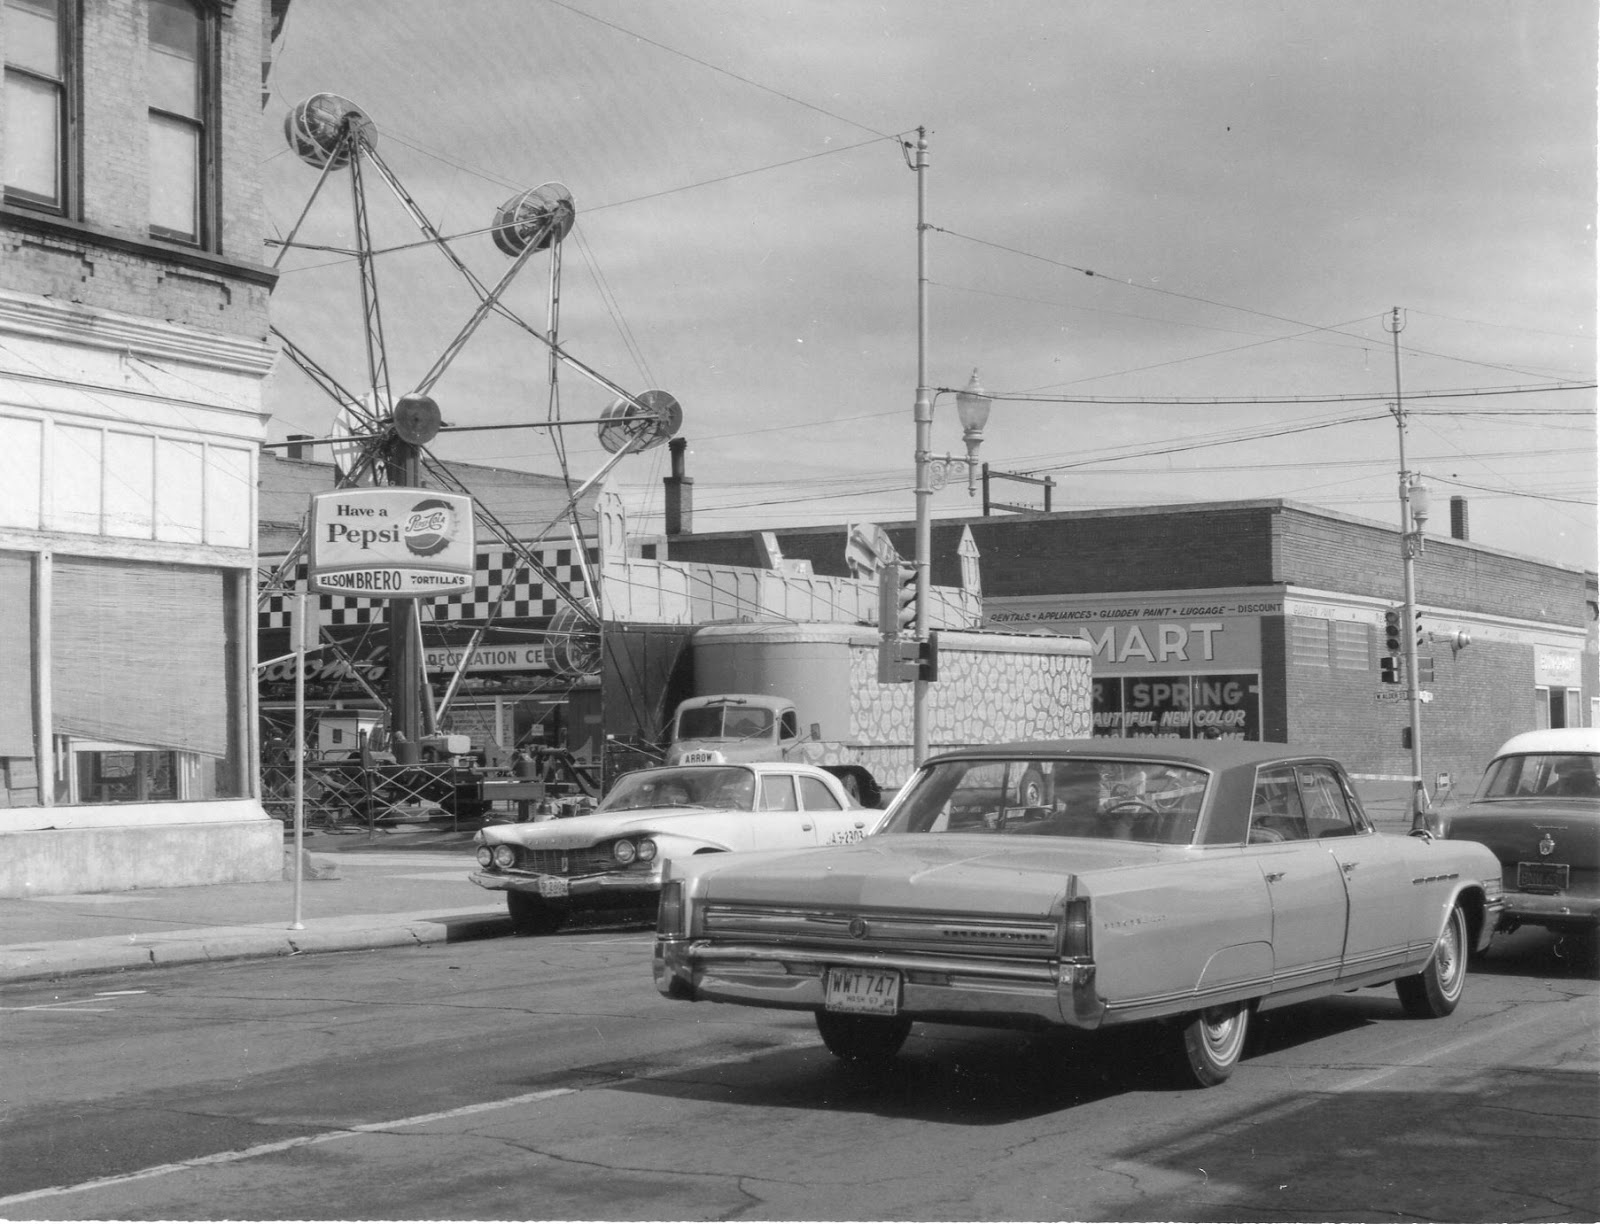 Carnival-rides-on-Alder-St-between-2nd-3rd-May-6-1966-11.jpg